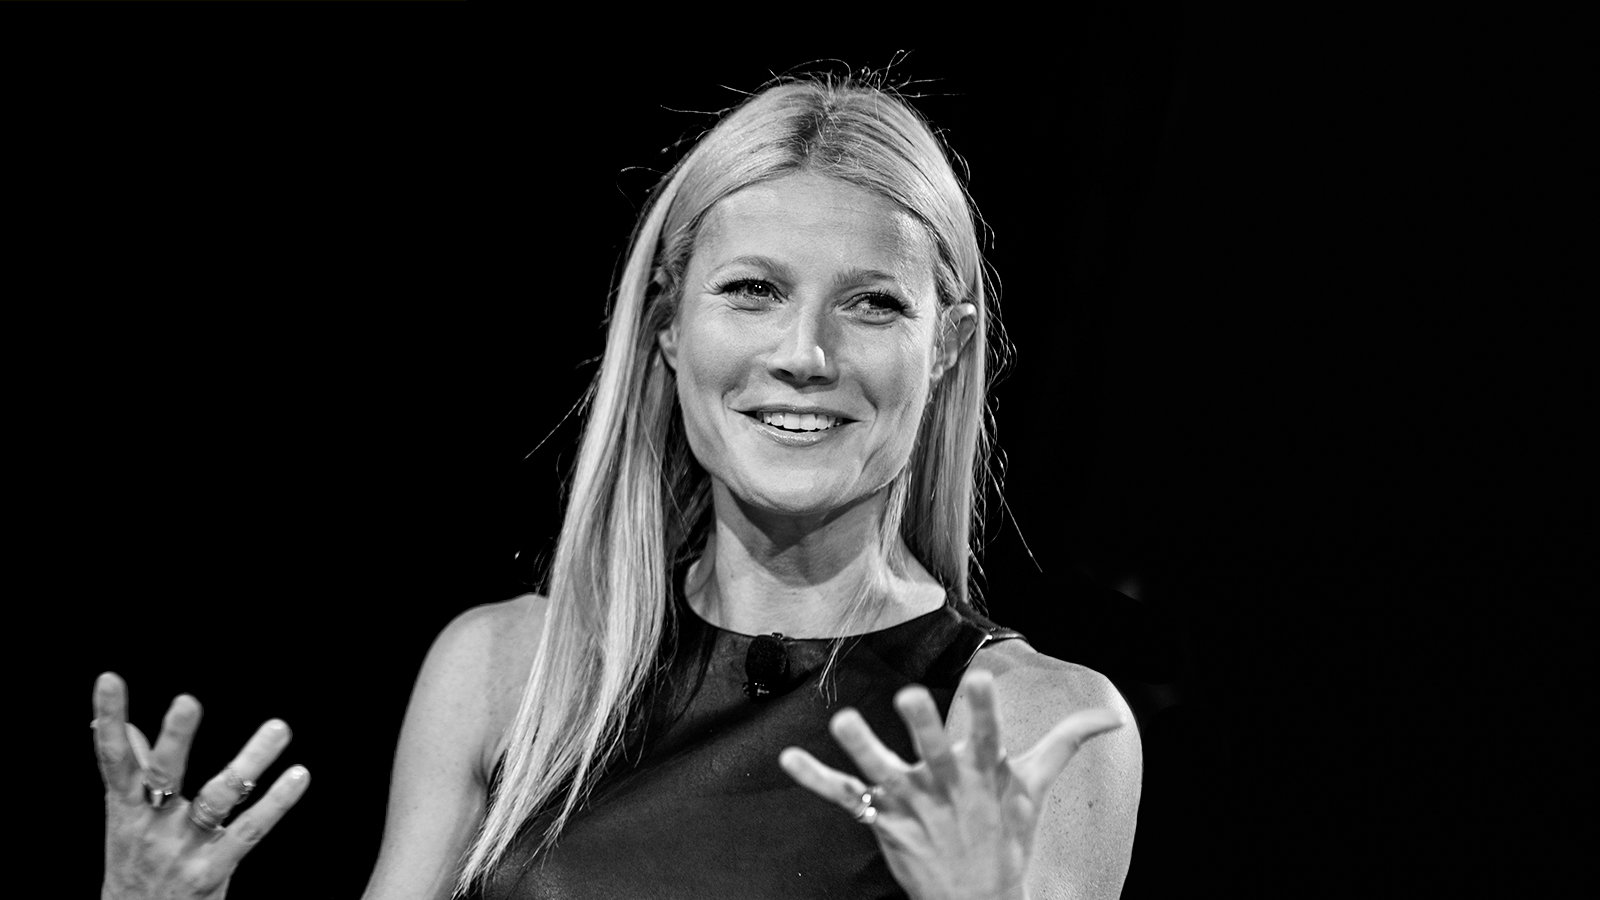 I skipped breakfast and worked out 2 hours a day like Gwyneth Paltrow – and it helped me break some of my worst habits